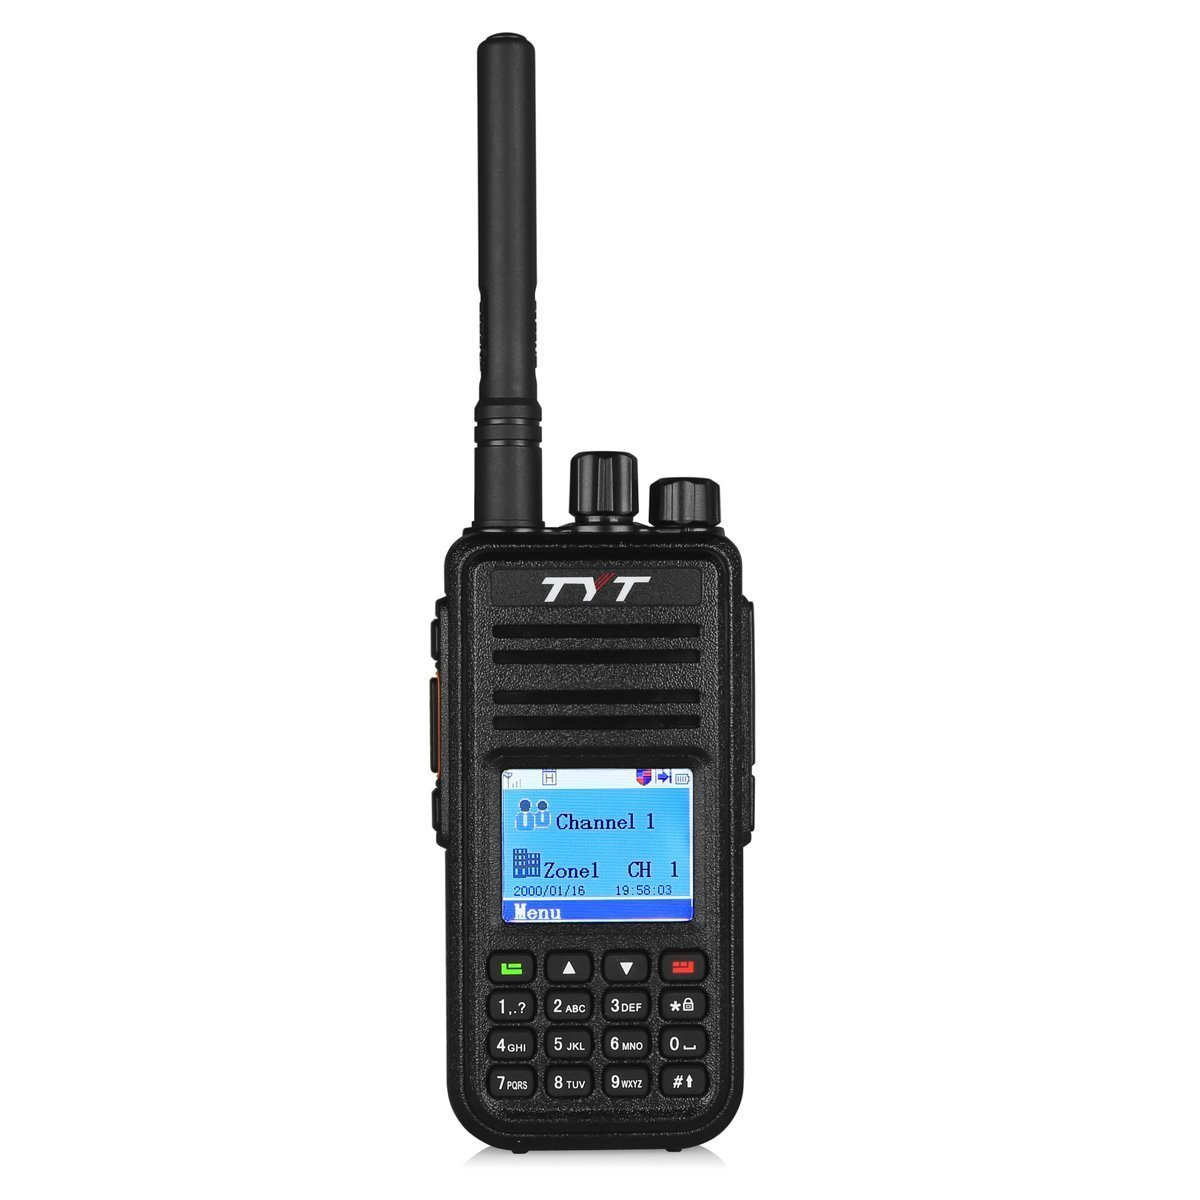 TYT Tytera MD-380 Digital DMR Two Way Radio, UHF 400-480Mhz, Up to 1000 Channels, with Color LCD Display, Programming Cable and 2 Antenna (High Gain Antenna included) Xiamen Radtel electronics co. Ltd MD380